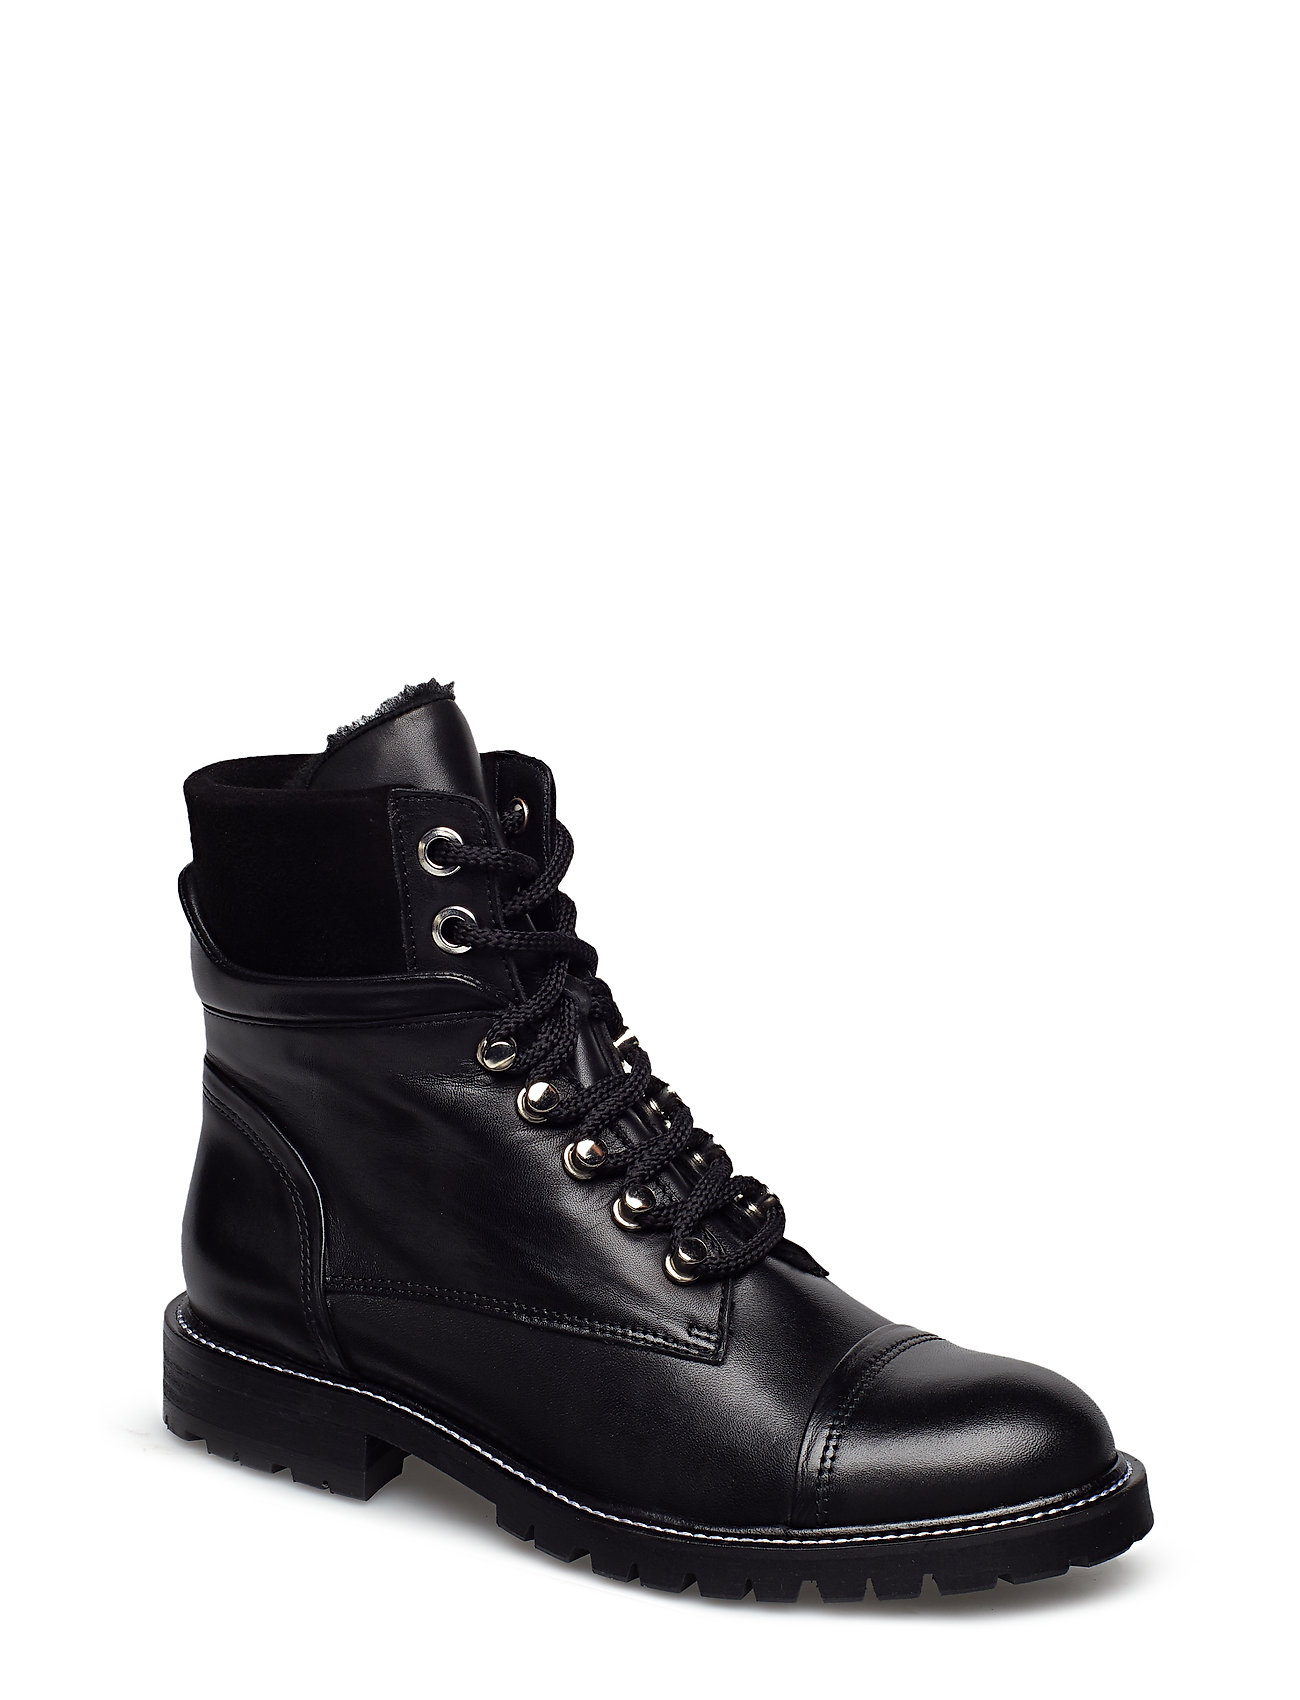 Image of Warm Lining 7437 Shoes Boots Ankle Boots Ankle Boot - Flat Sort Billi Bi (3406144231)